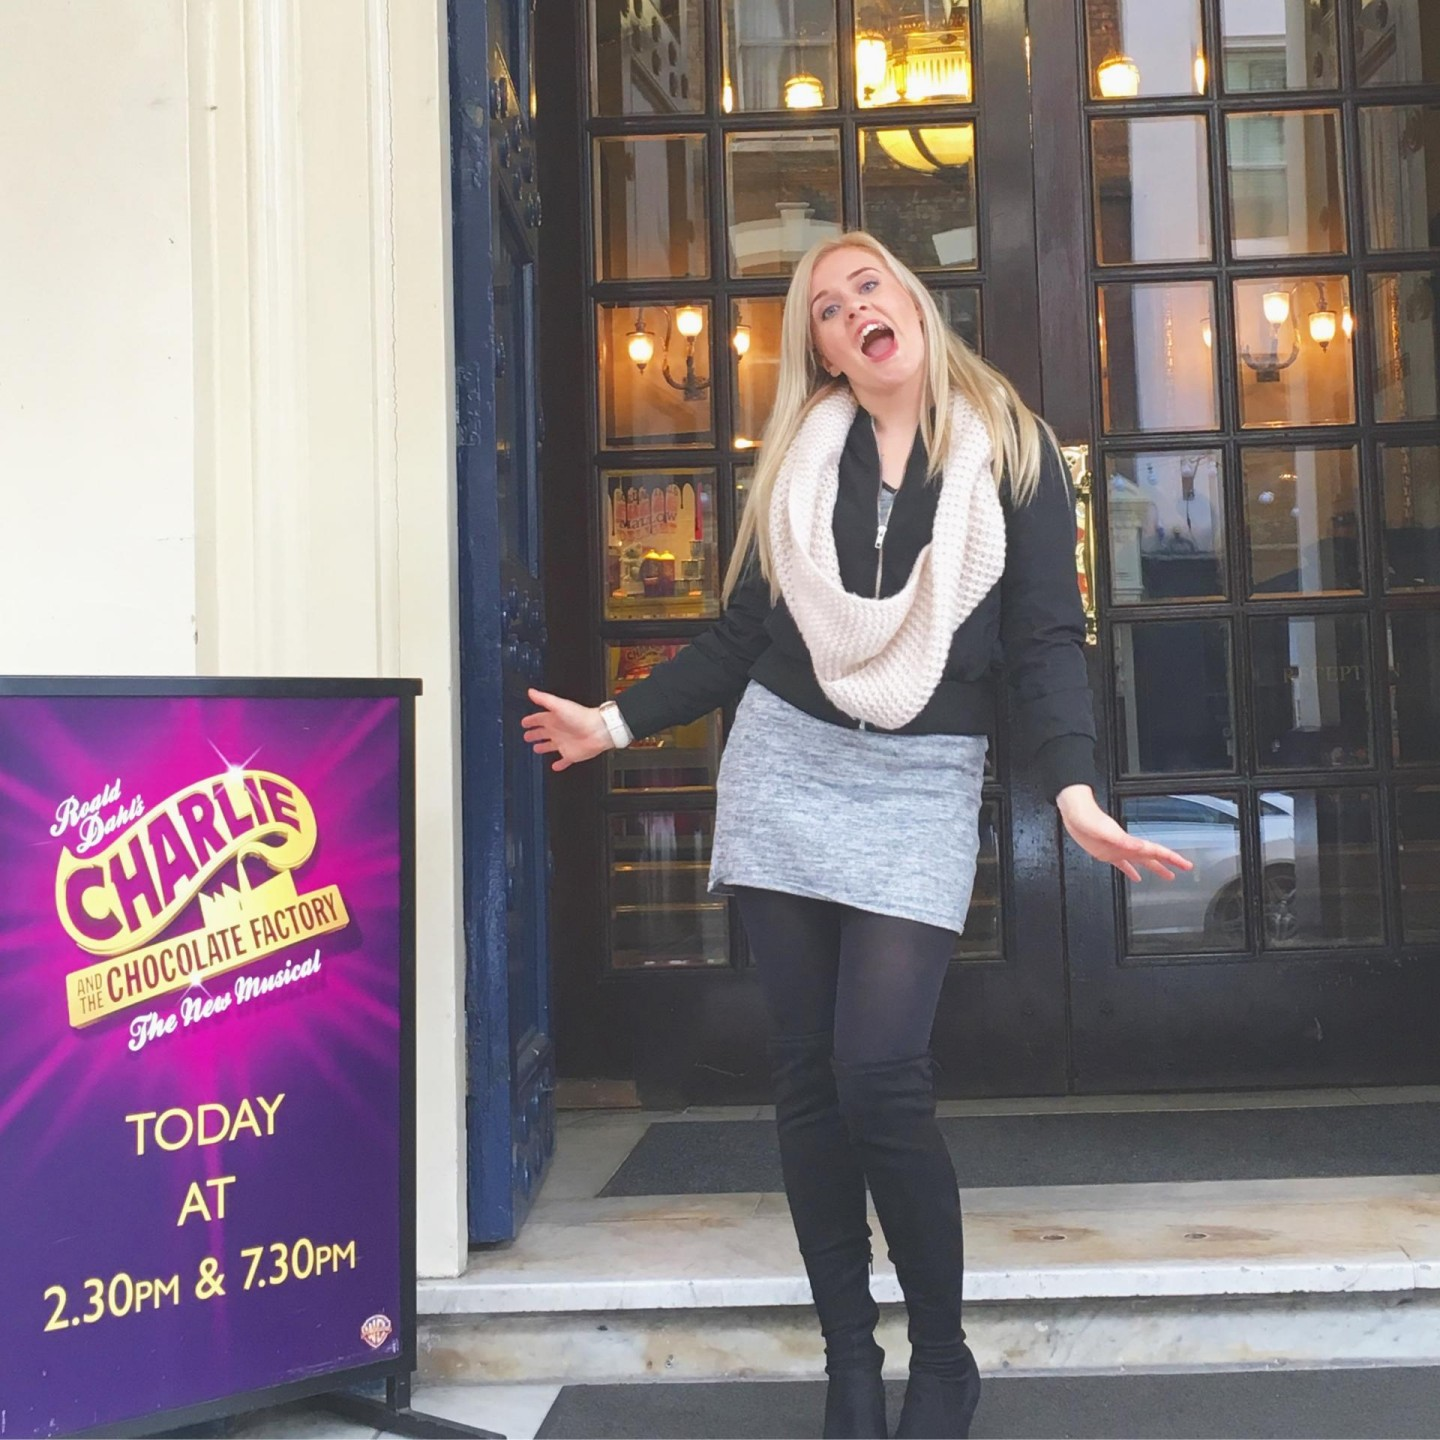 Charlie and the chocolate factory Theatre Royal Drury Lane